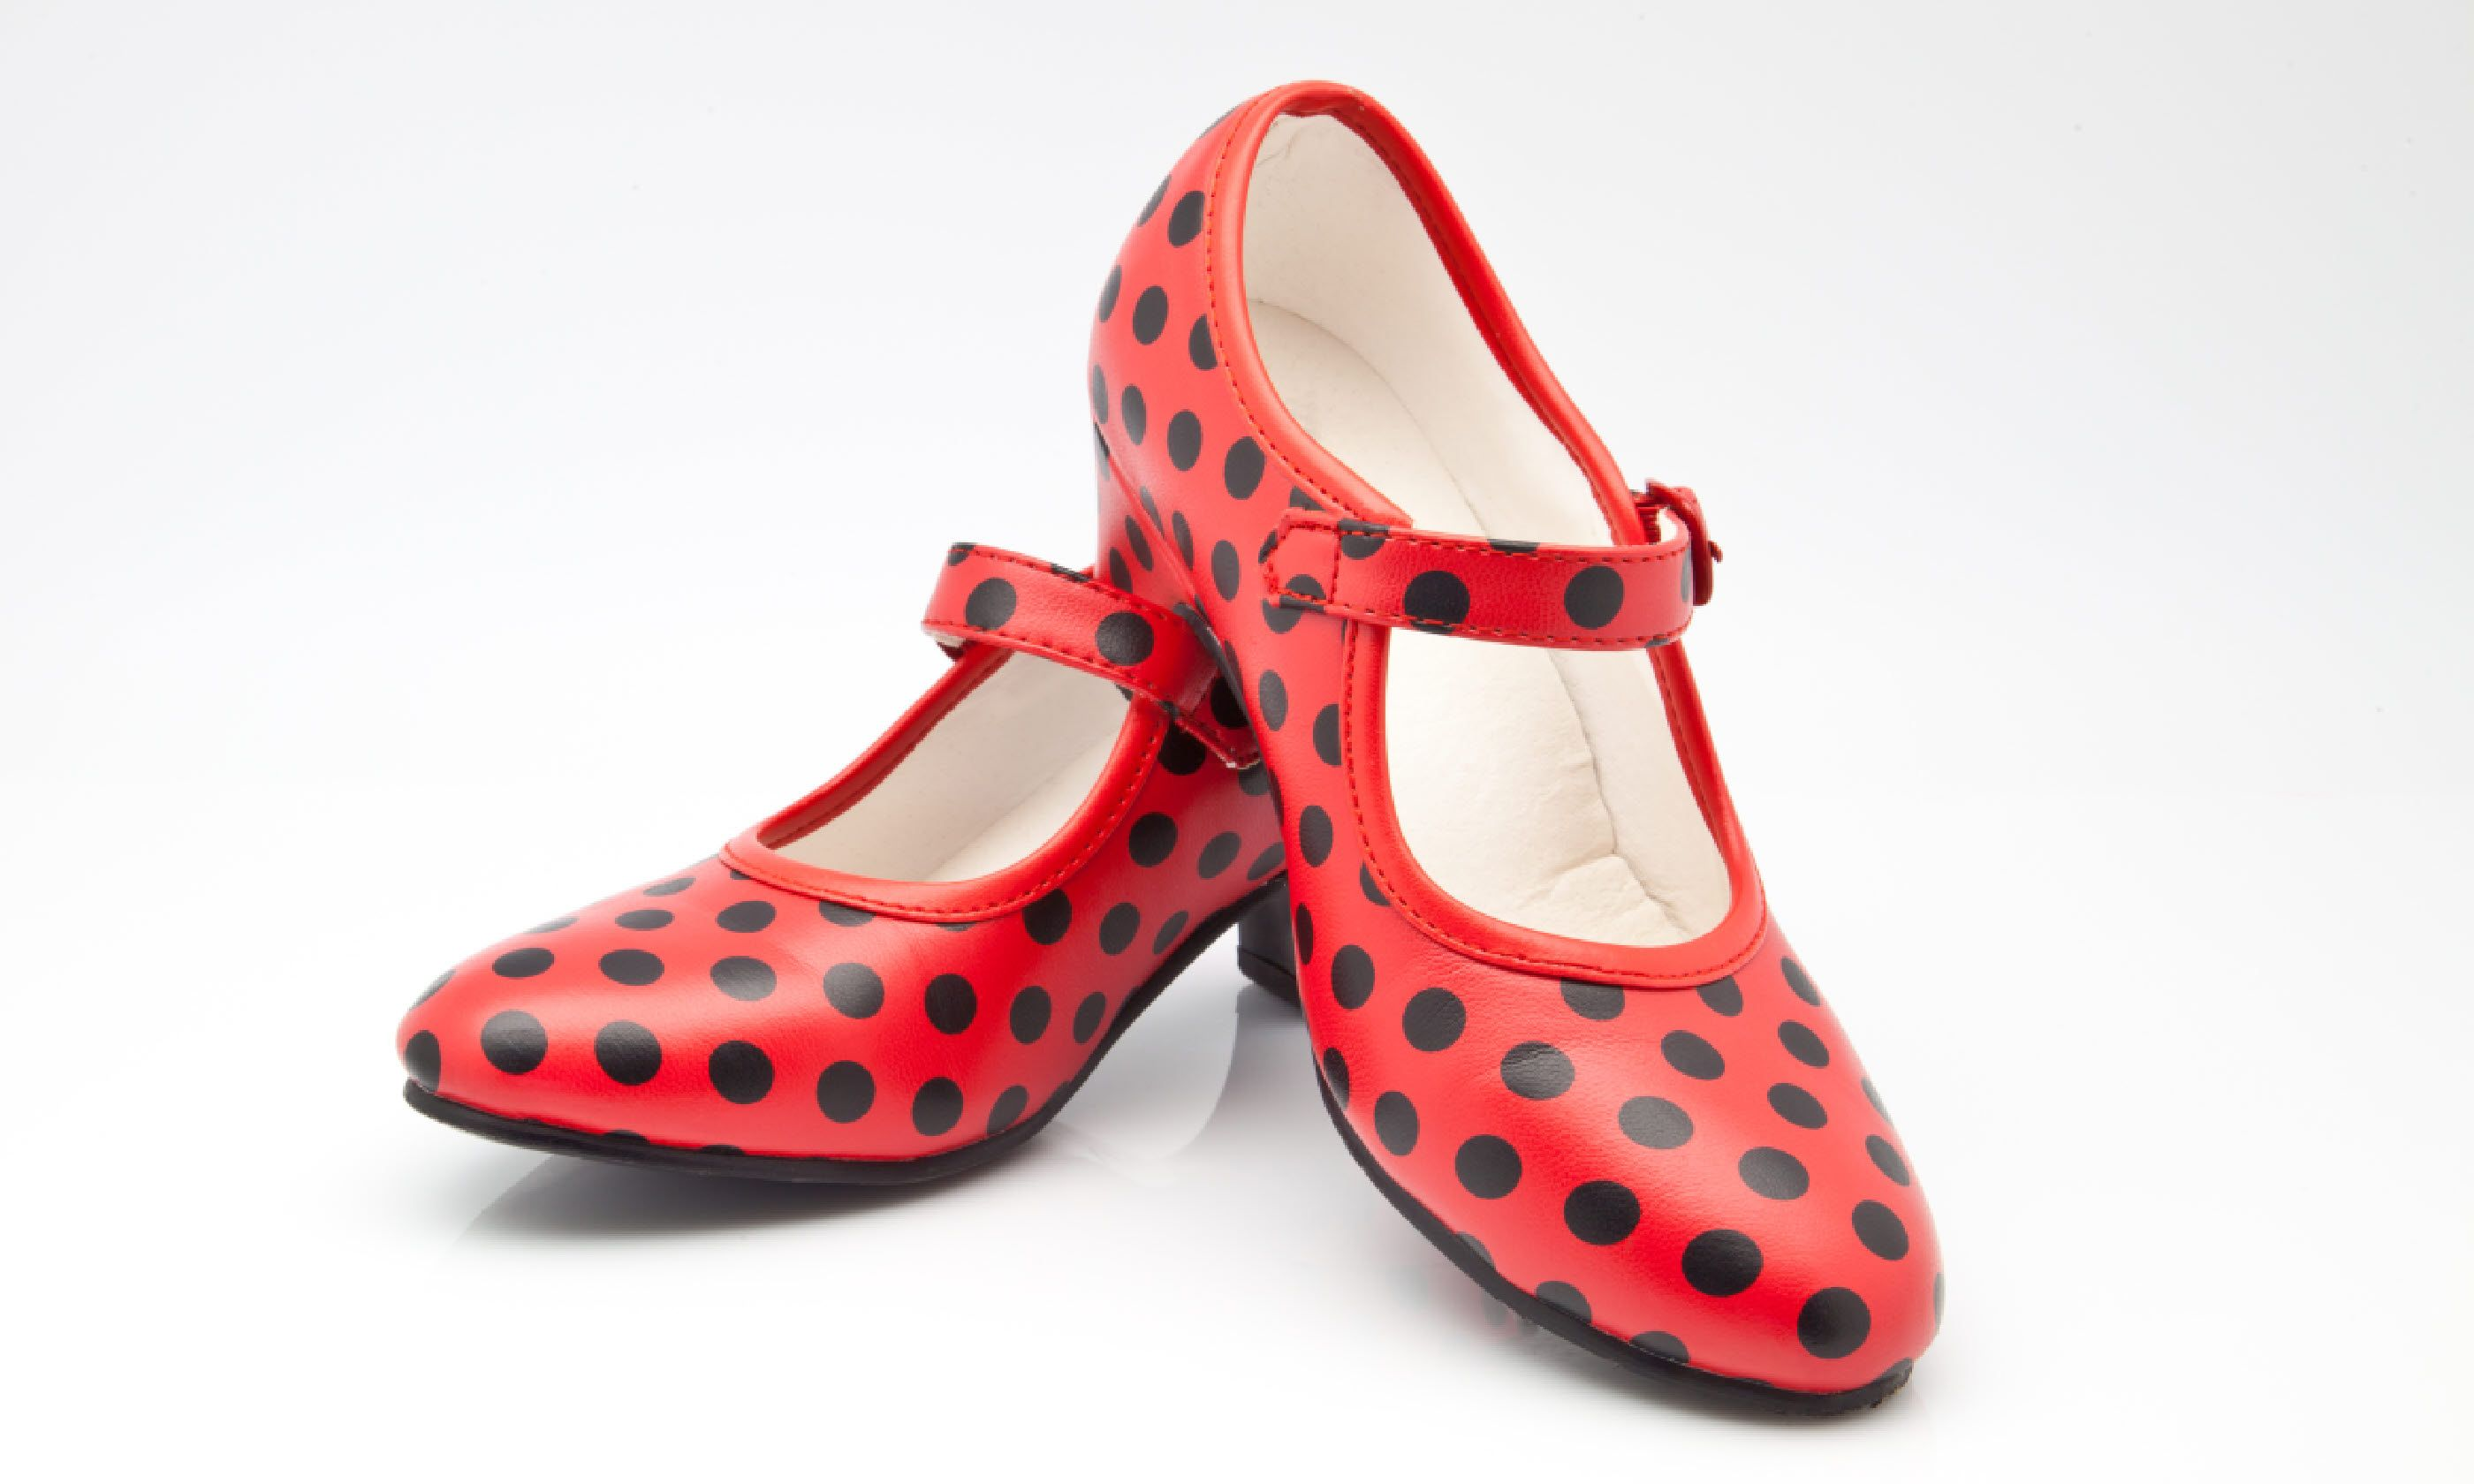 Polka dot shoes (Shutterstock)